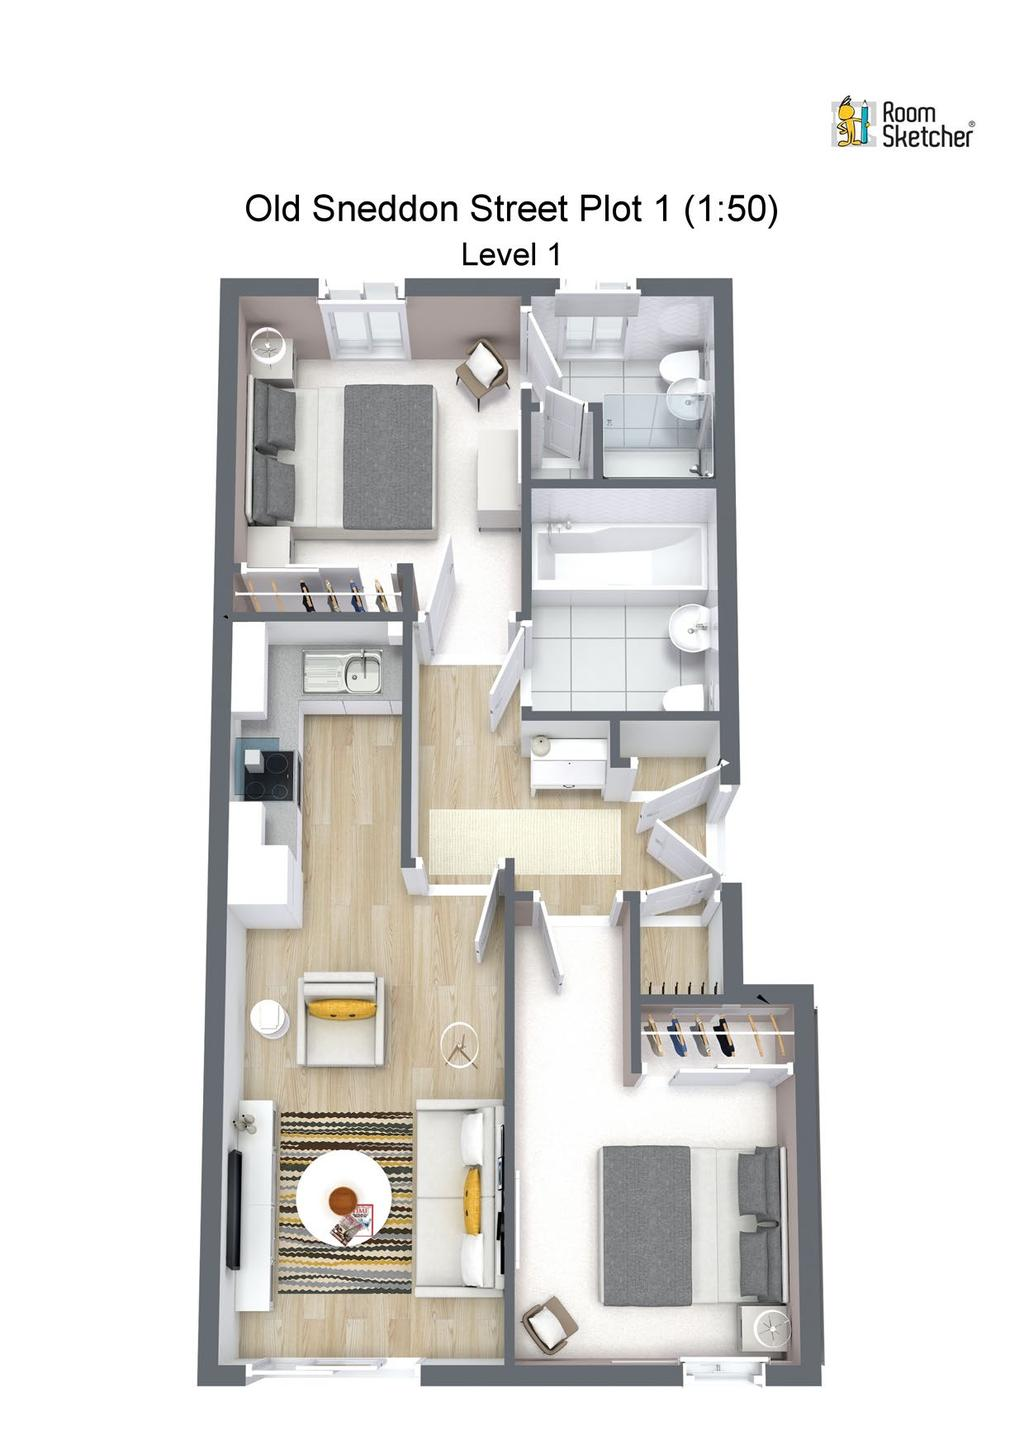 01 09 17 25 9 17 25 02 1 2 2 bedroom apartment ground, first, second and third floor 665.2 sq ft 61.